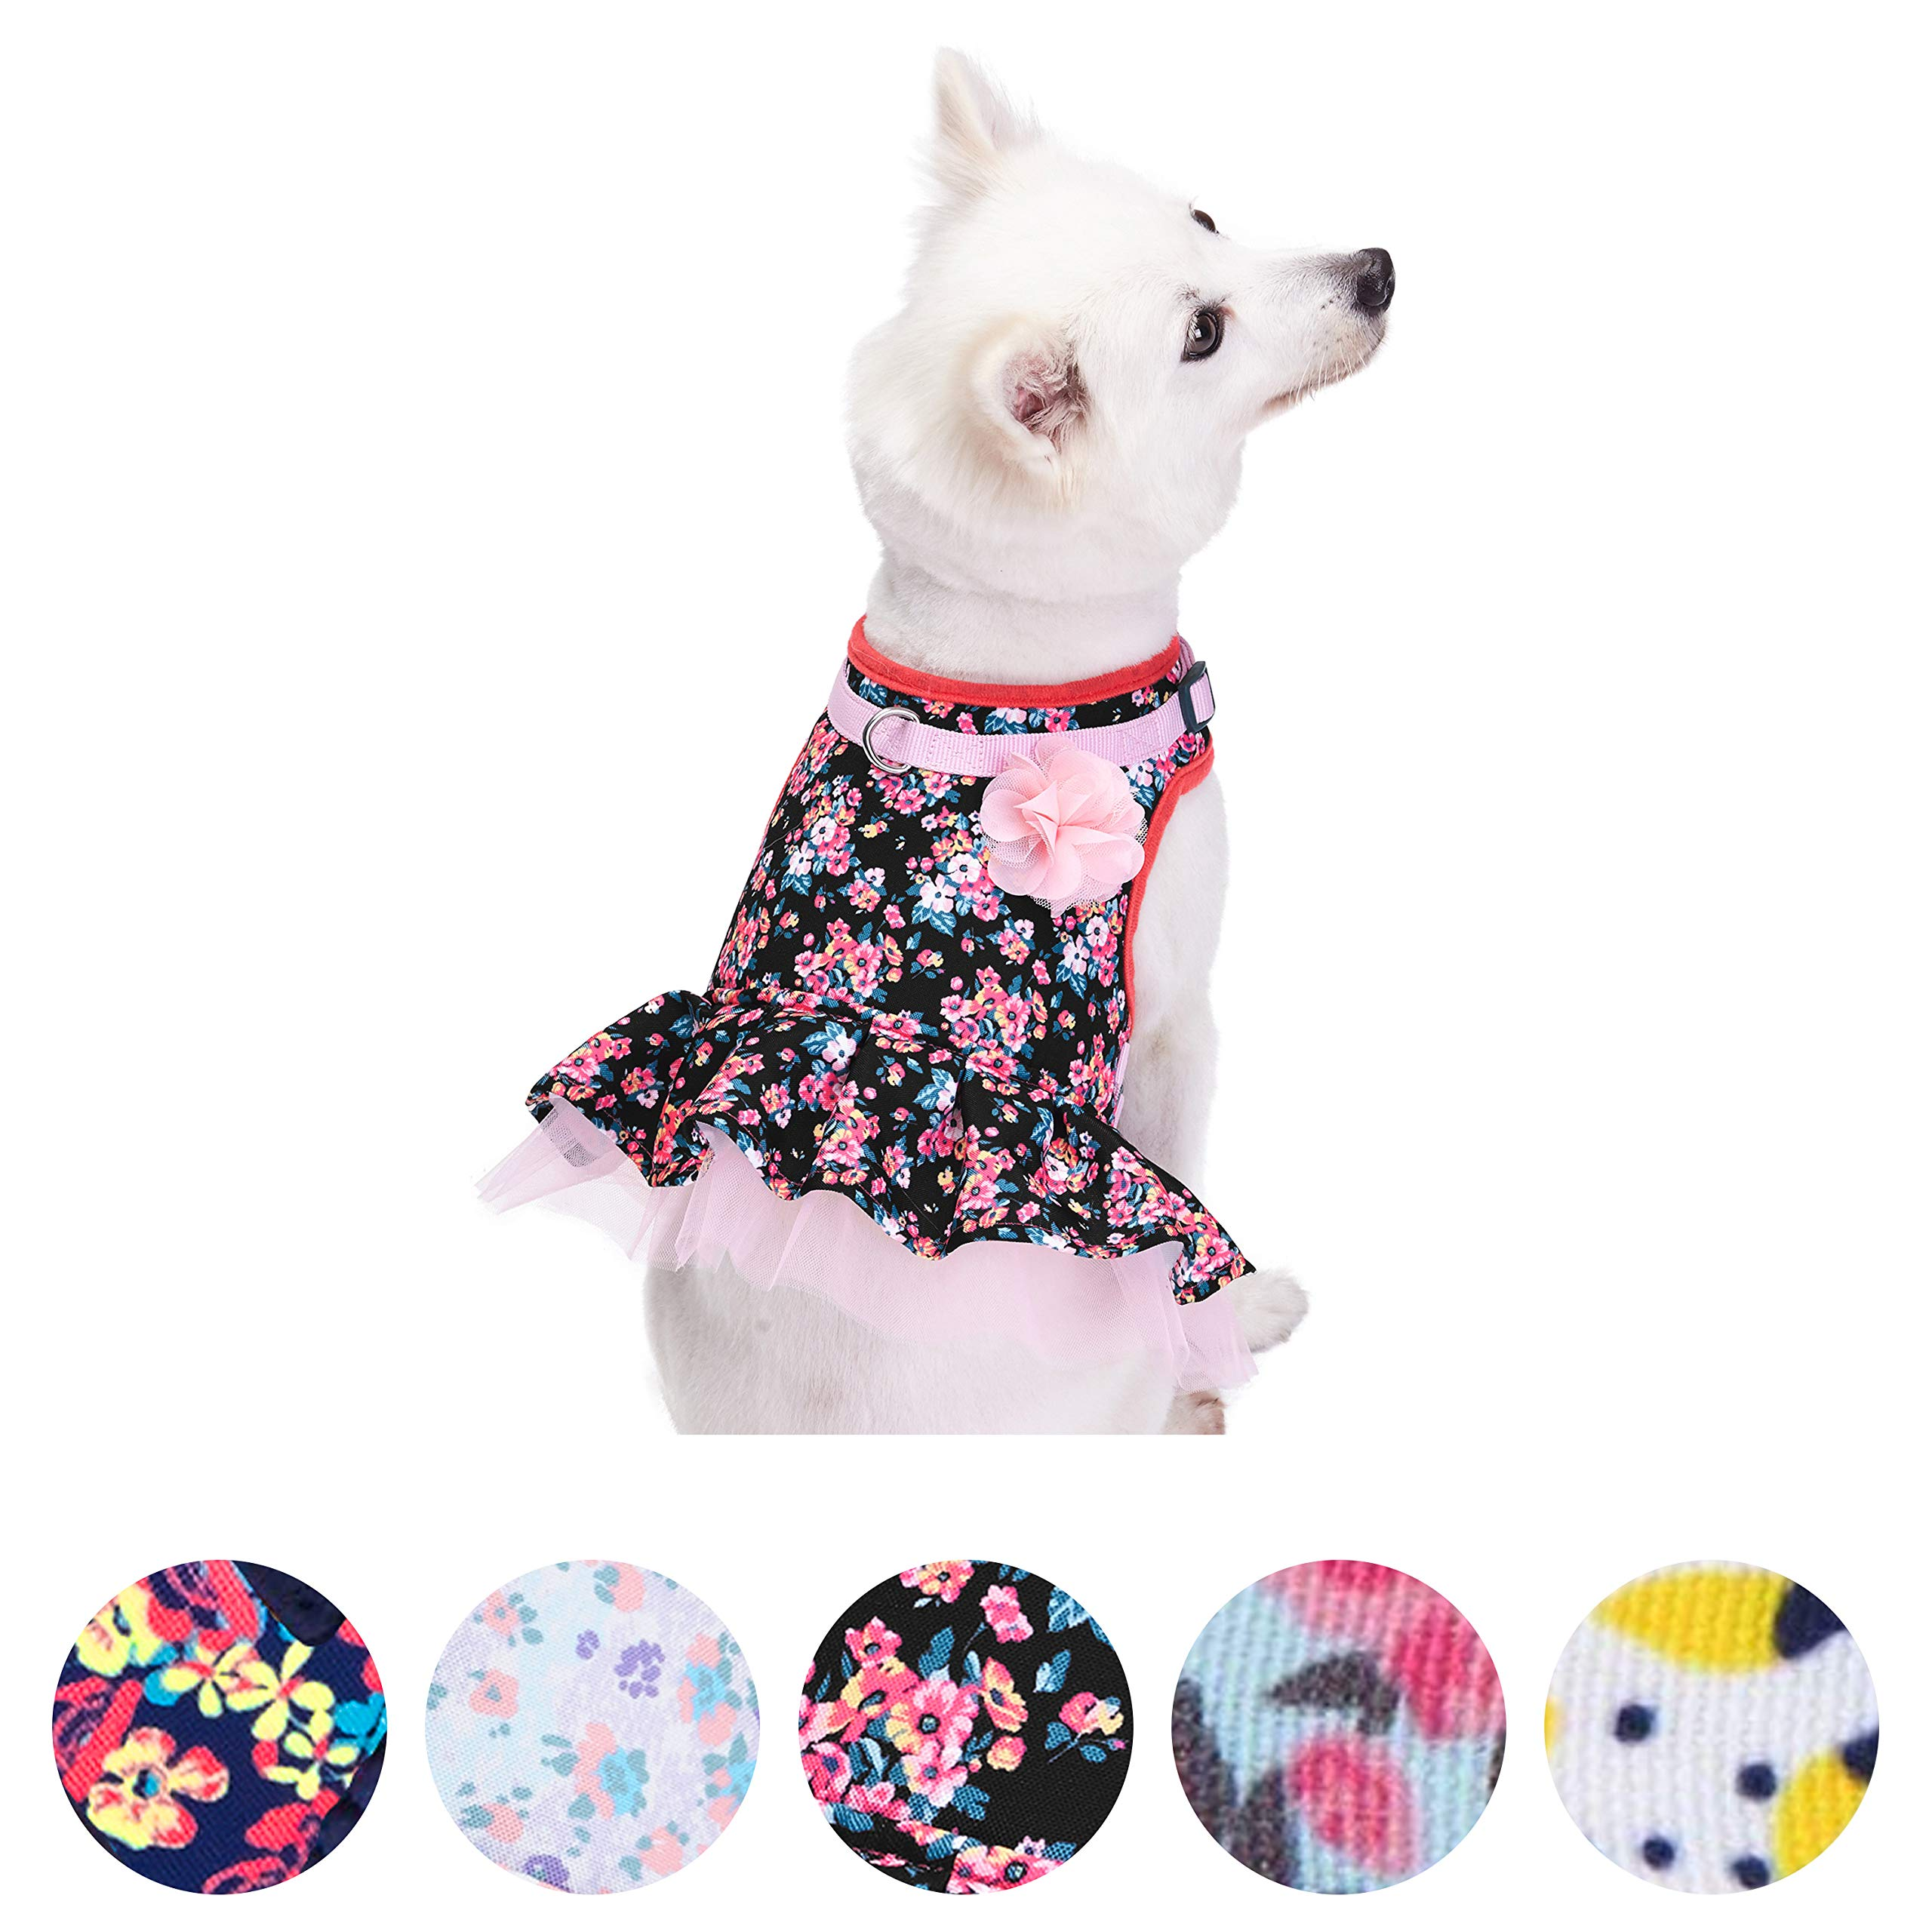 Blueberry Pet New Soft & Comfy Spring Made Well Elegant Floral No Pull Mesh Puppy Dog Costume Harness Dress in Sleek Black, Chest Girth 14''-16'', X-Small, Adjustable Harnesses Dogs